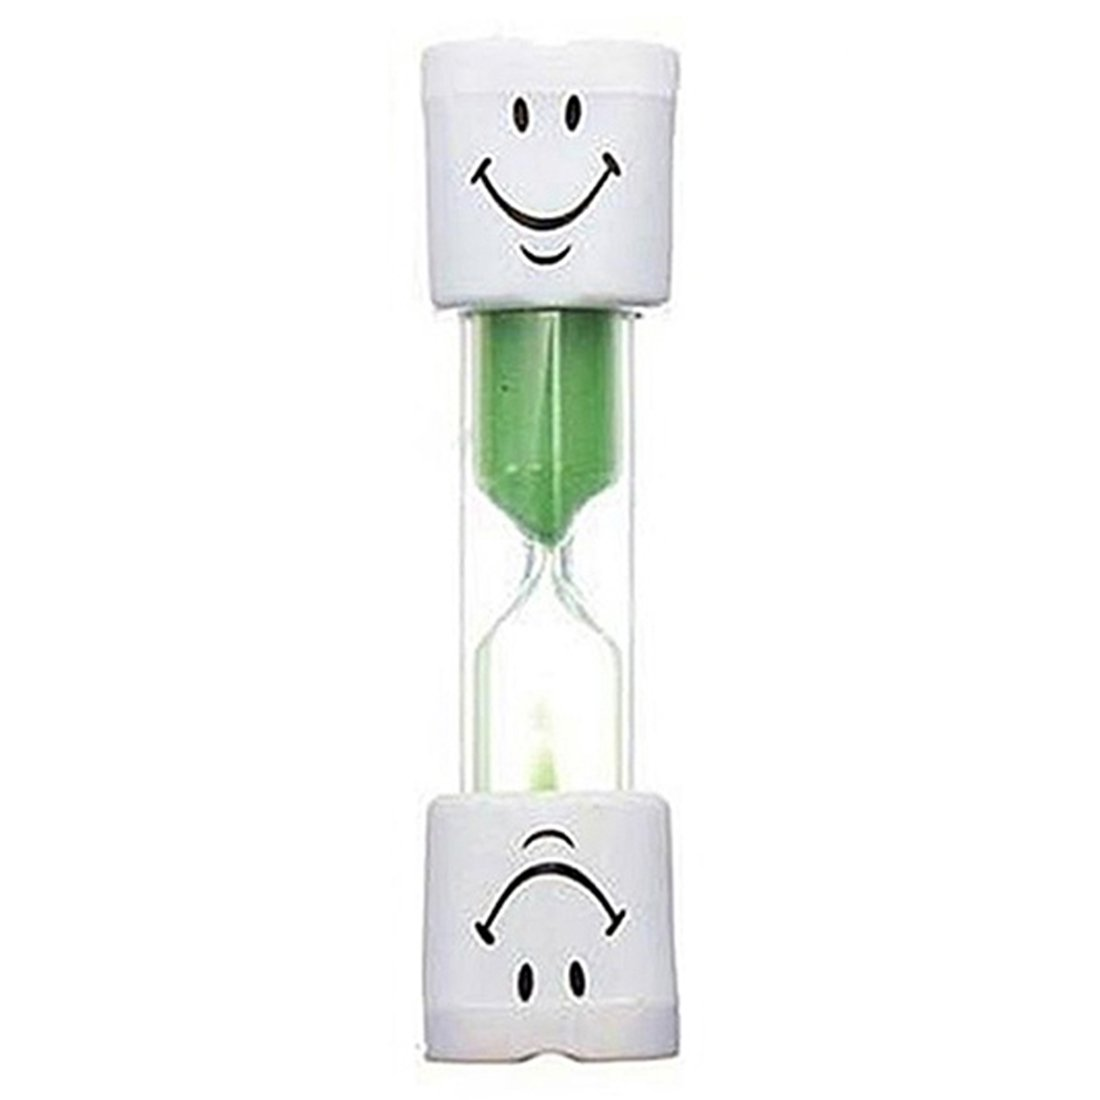 Colorful Children Kids Toothbrush Timer 2-Minute Smile Sandglass Tooth Brushing-Green